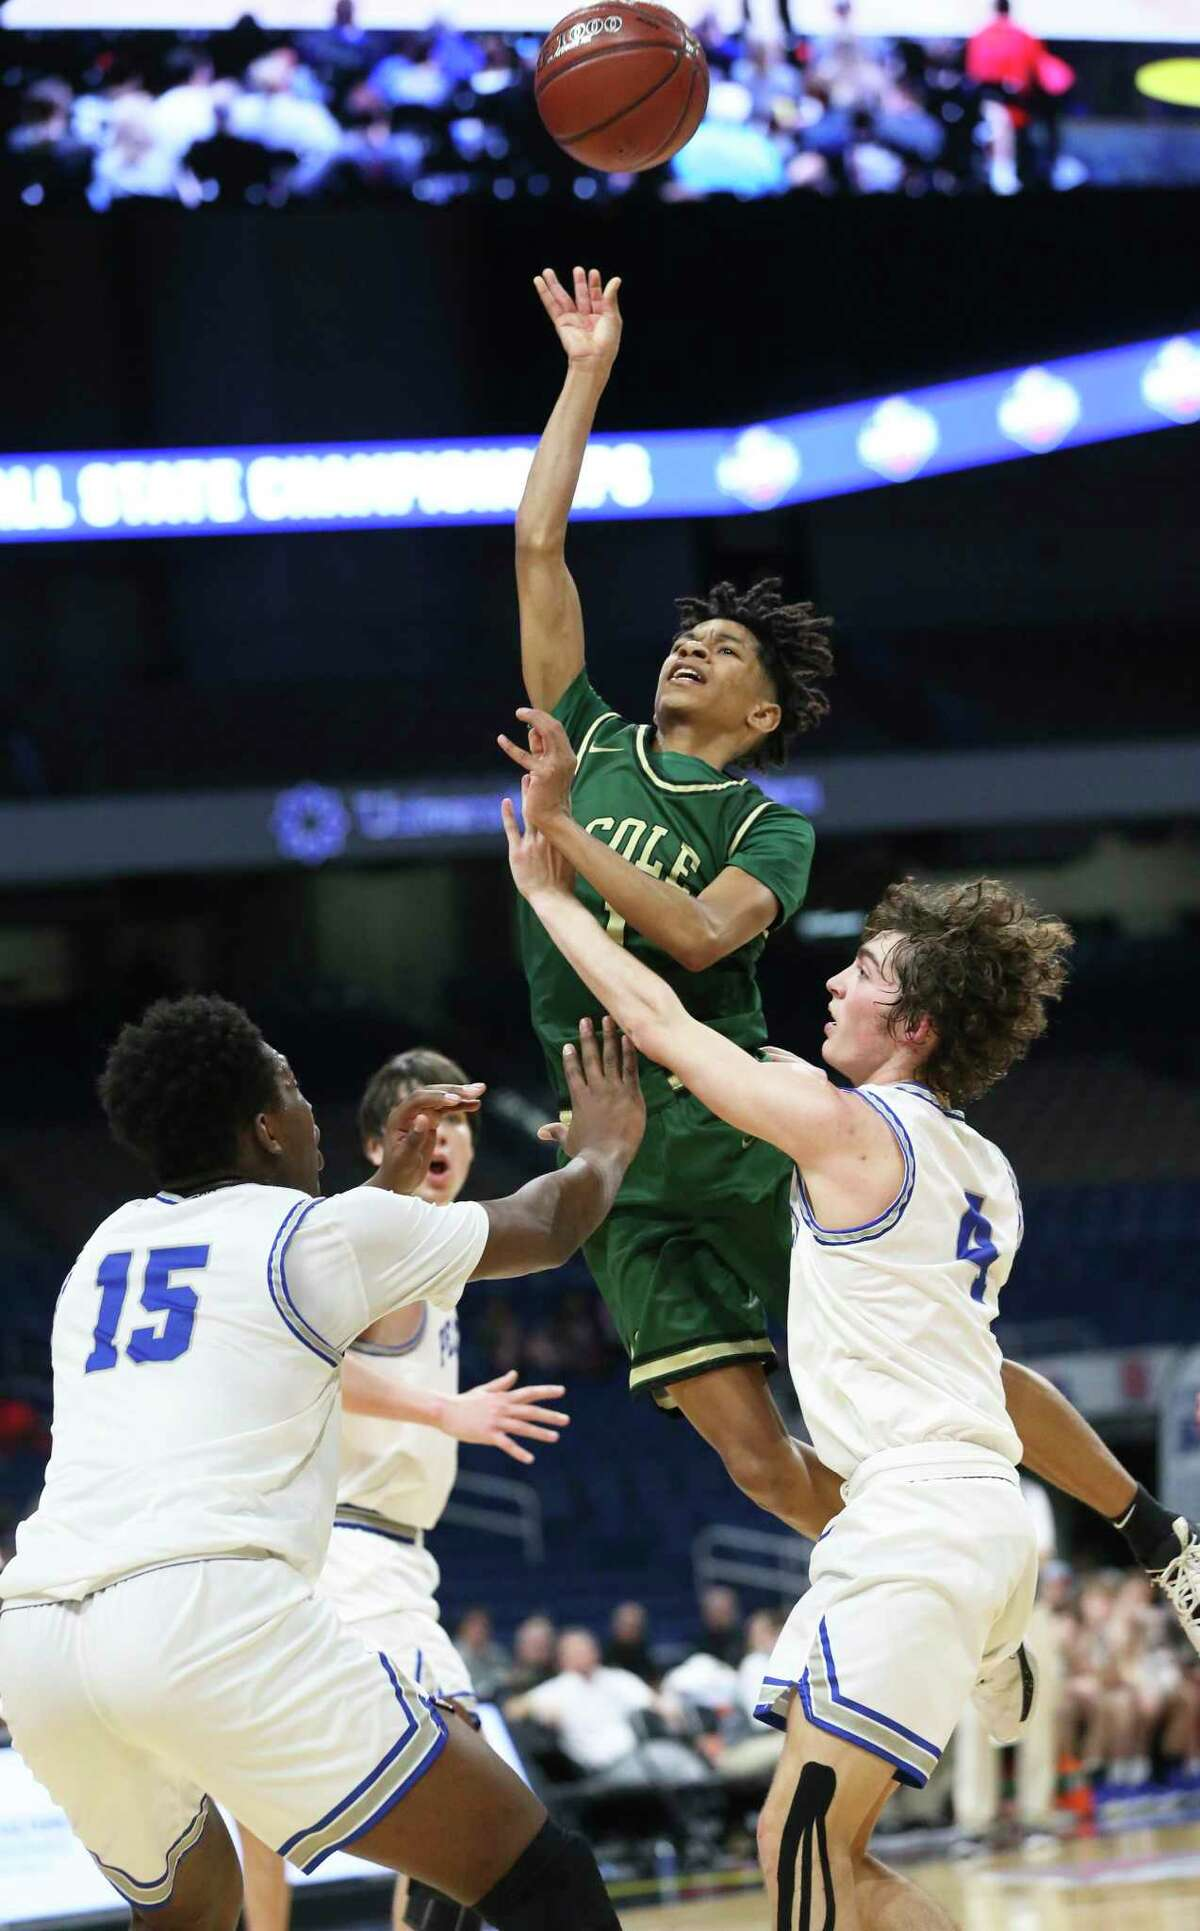 Cougar guard Silas Livingston gets off a jumper during the class 3A state semifinal boys basketball game between Cole and Peaster at the Alamodome on Feb. 12, 2020.